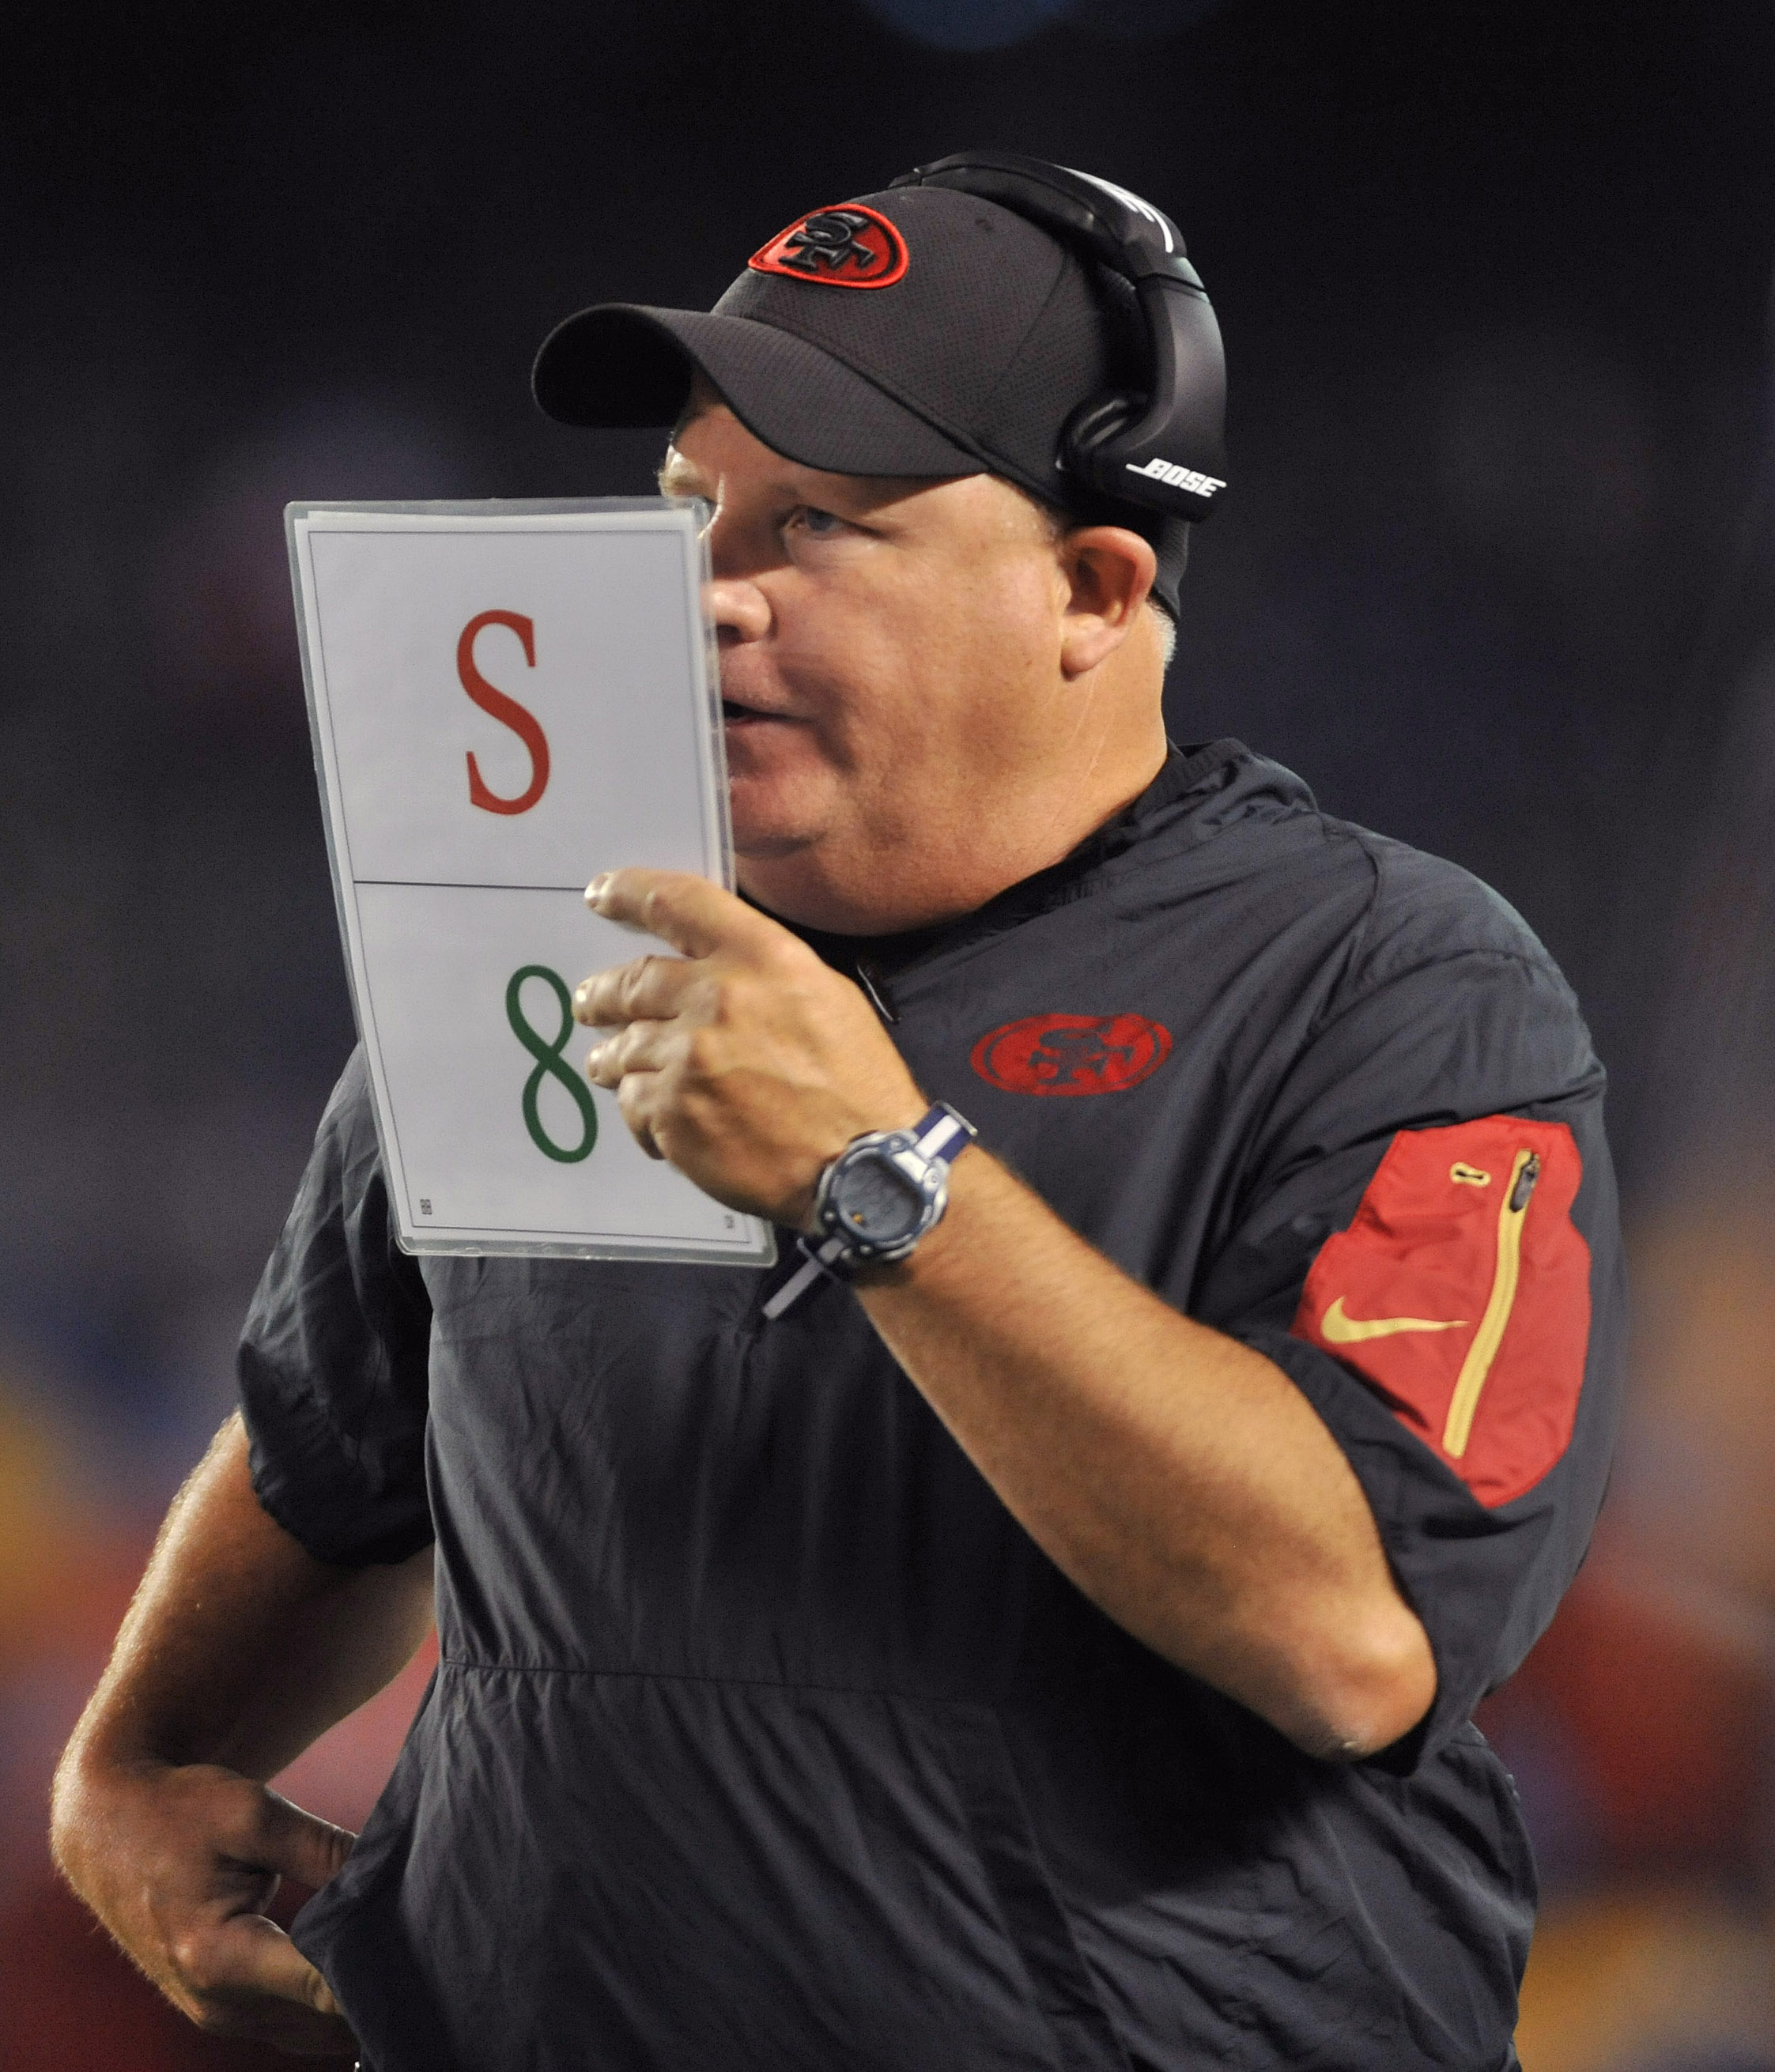 Chip Kelly offers sort of explanation about the S & 8 on ...